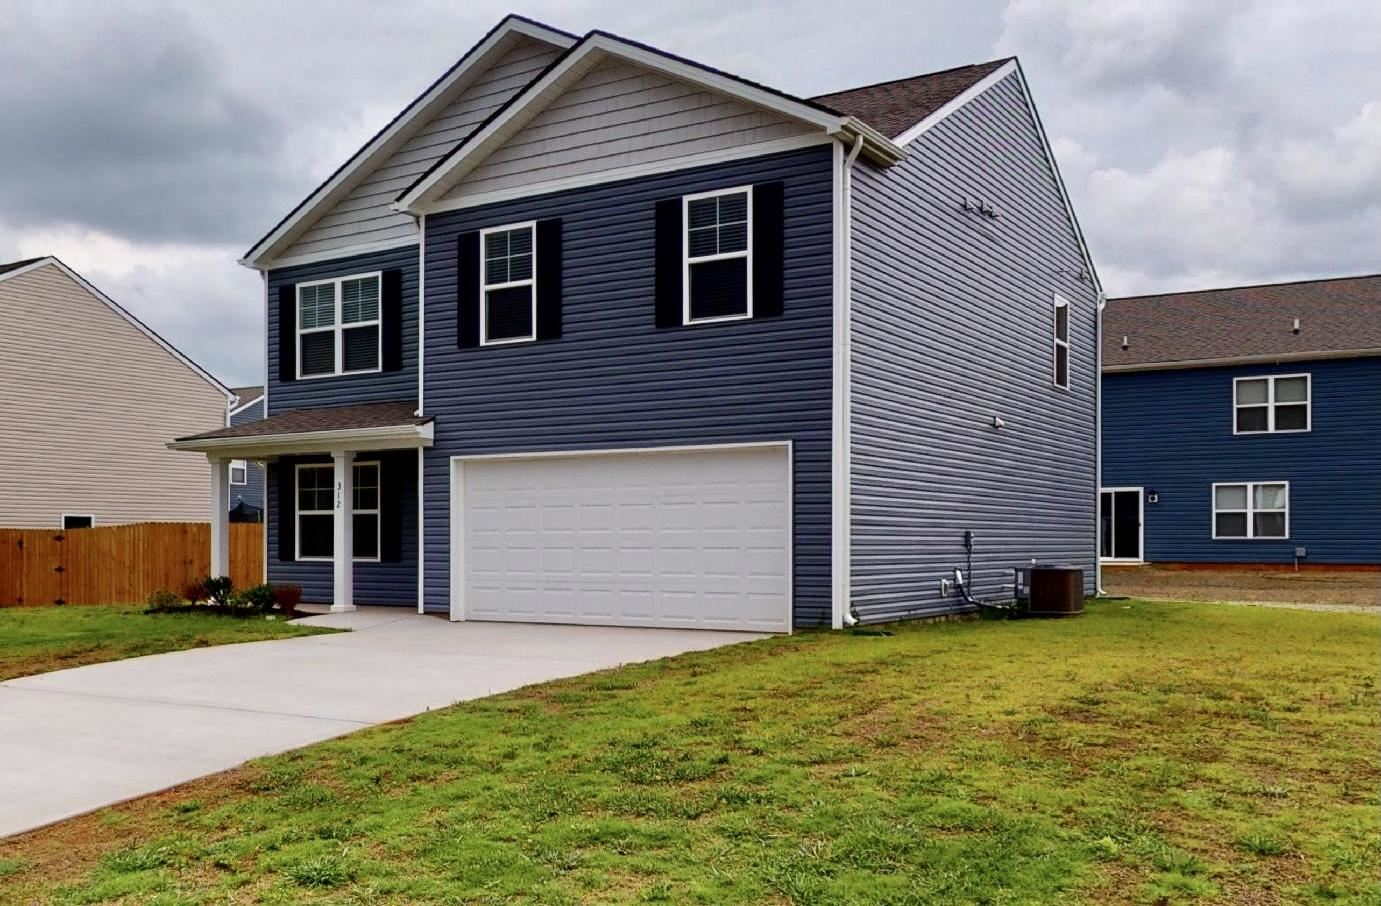 Photo of 312 Holliwell Chase Lane, Maryville, TN 37804 (MLS # 1161194)